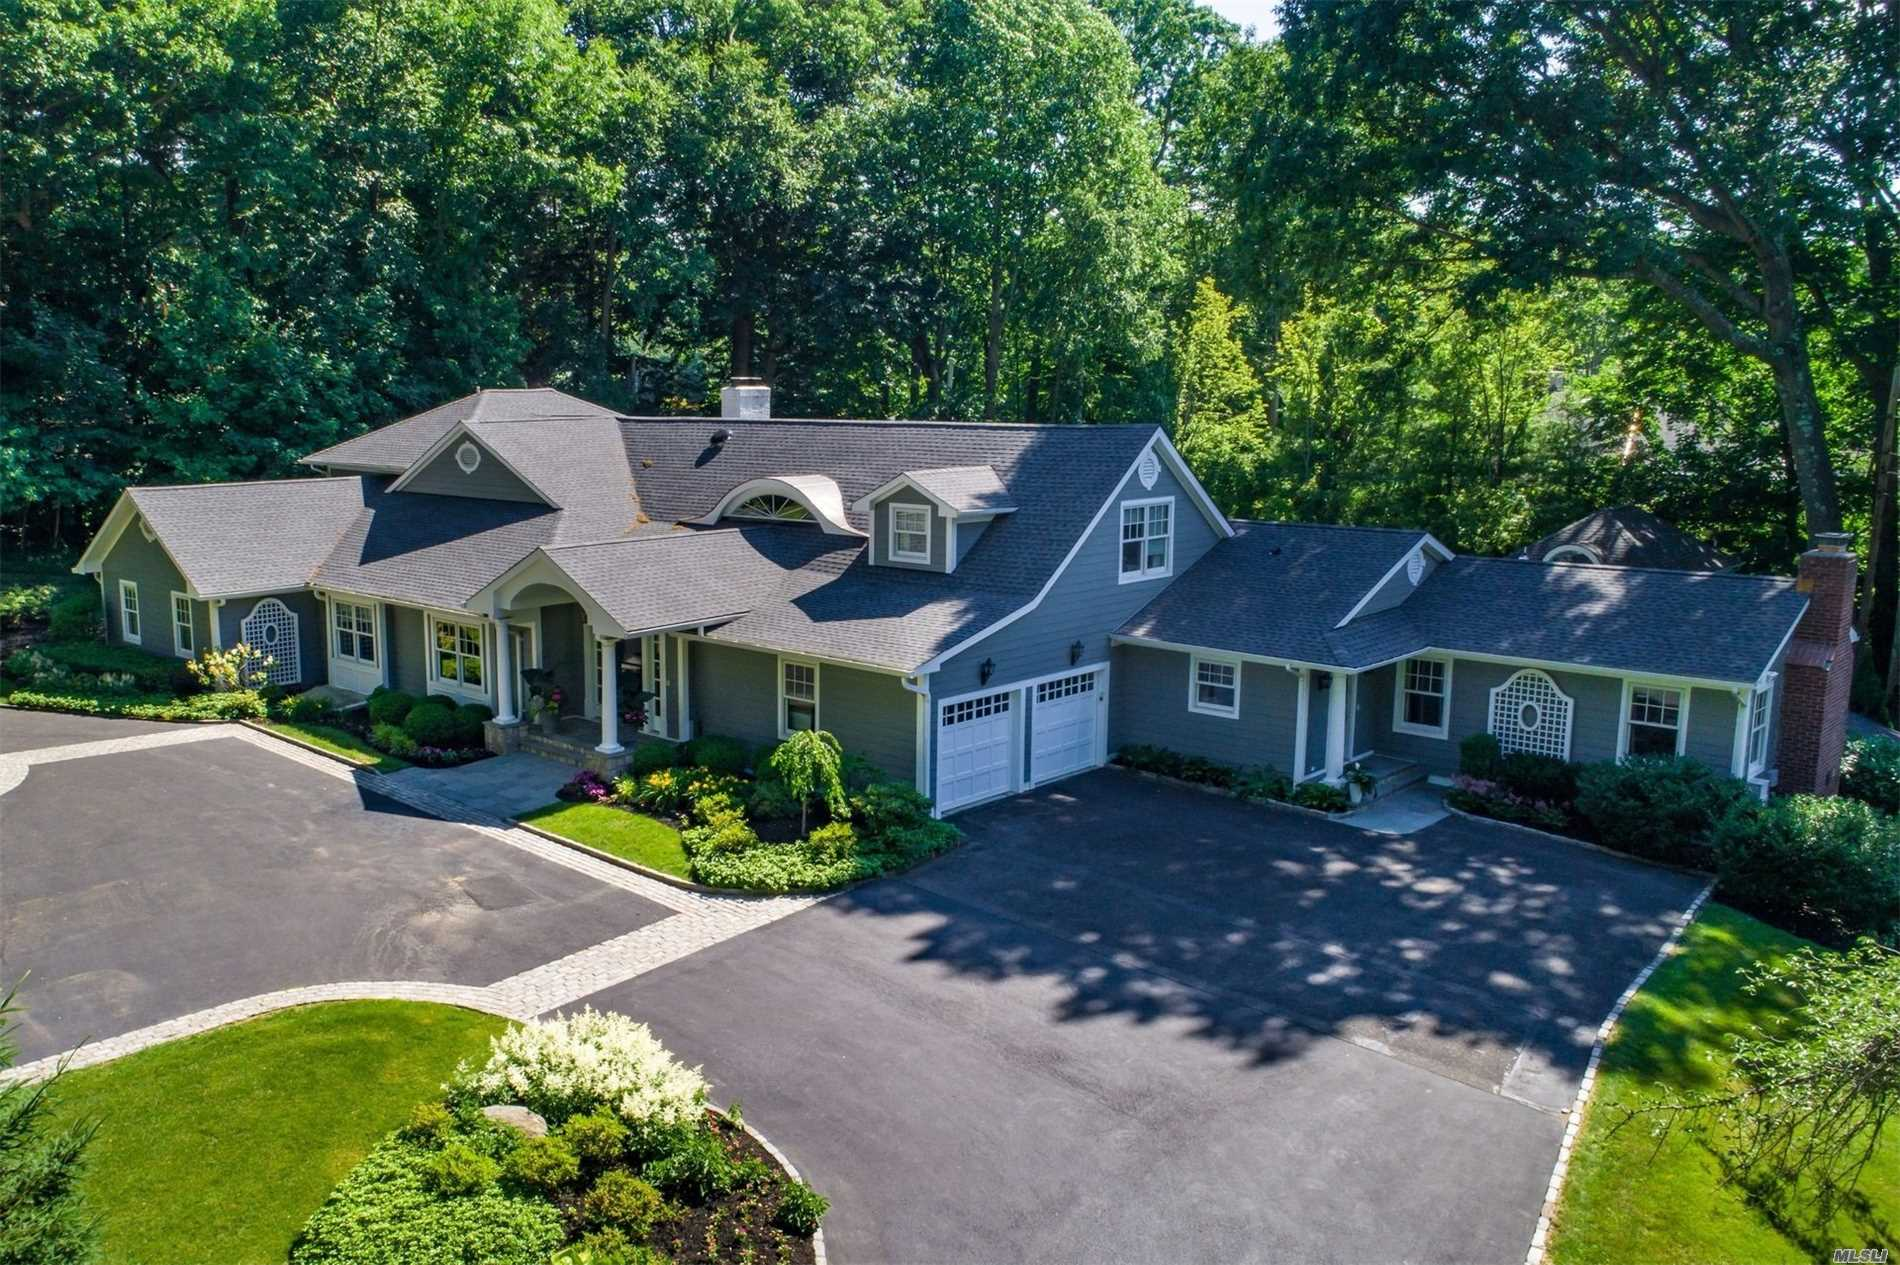 Updated 6000 Sq Ft 6 Bedroom, 3.55 Open Concept Home. Master Retreat (Approx 1200 Sq Ft) On First Floor. 1.46 Acres With Heated Gunite Pool, Pool House, Putting Green. 2 Gas Fireplaces. Mudroom/Laundry Room. Whole House Generator. 2018 New Roof And Hardie Board Siding